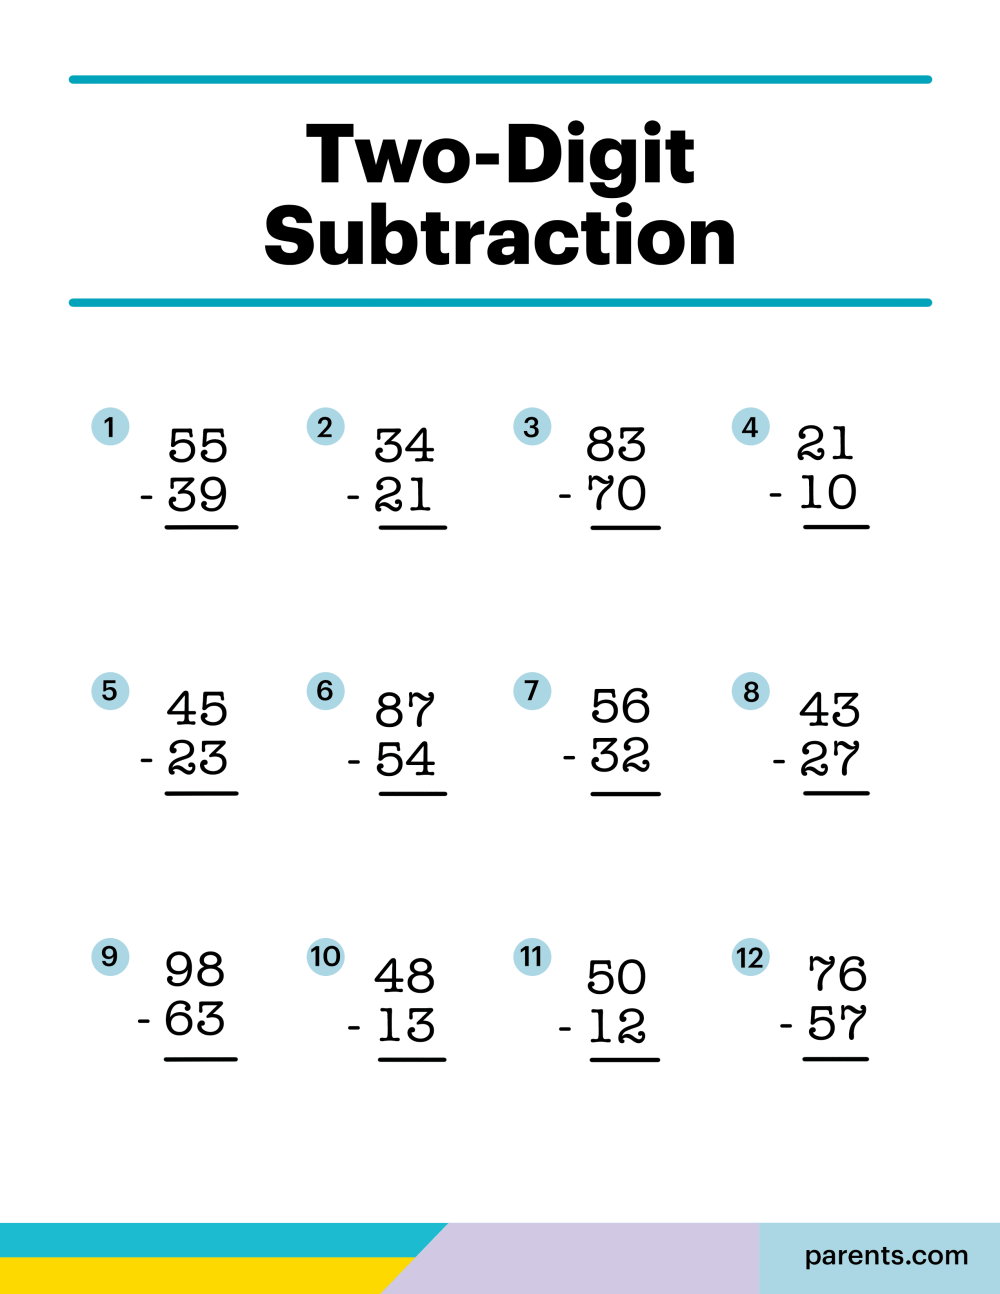 medium resolution of 8 Subtraction Worksheets for First Through Third Graders   Parents